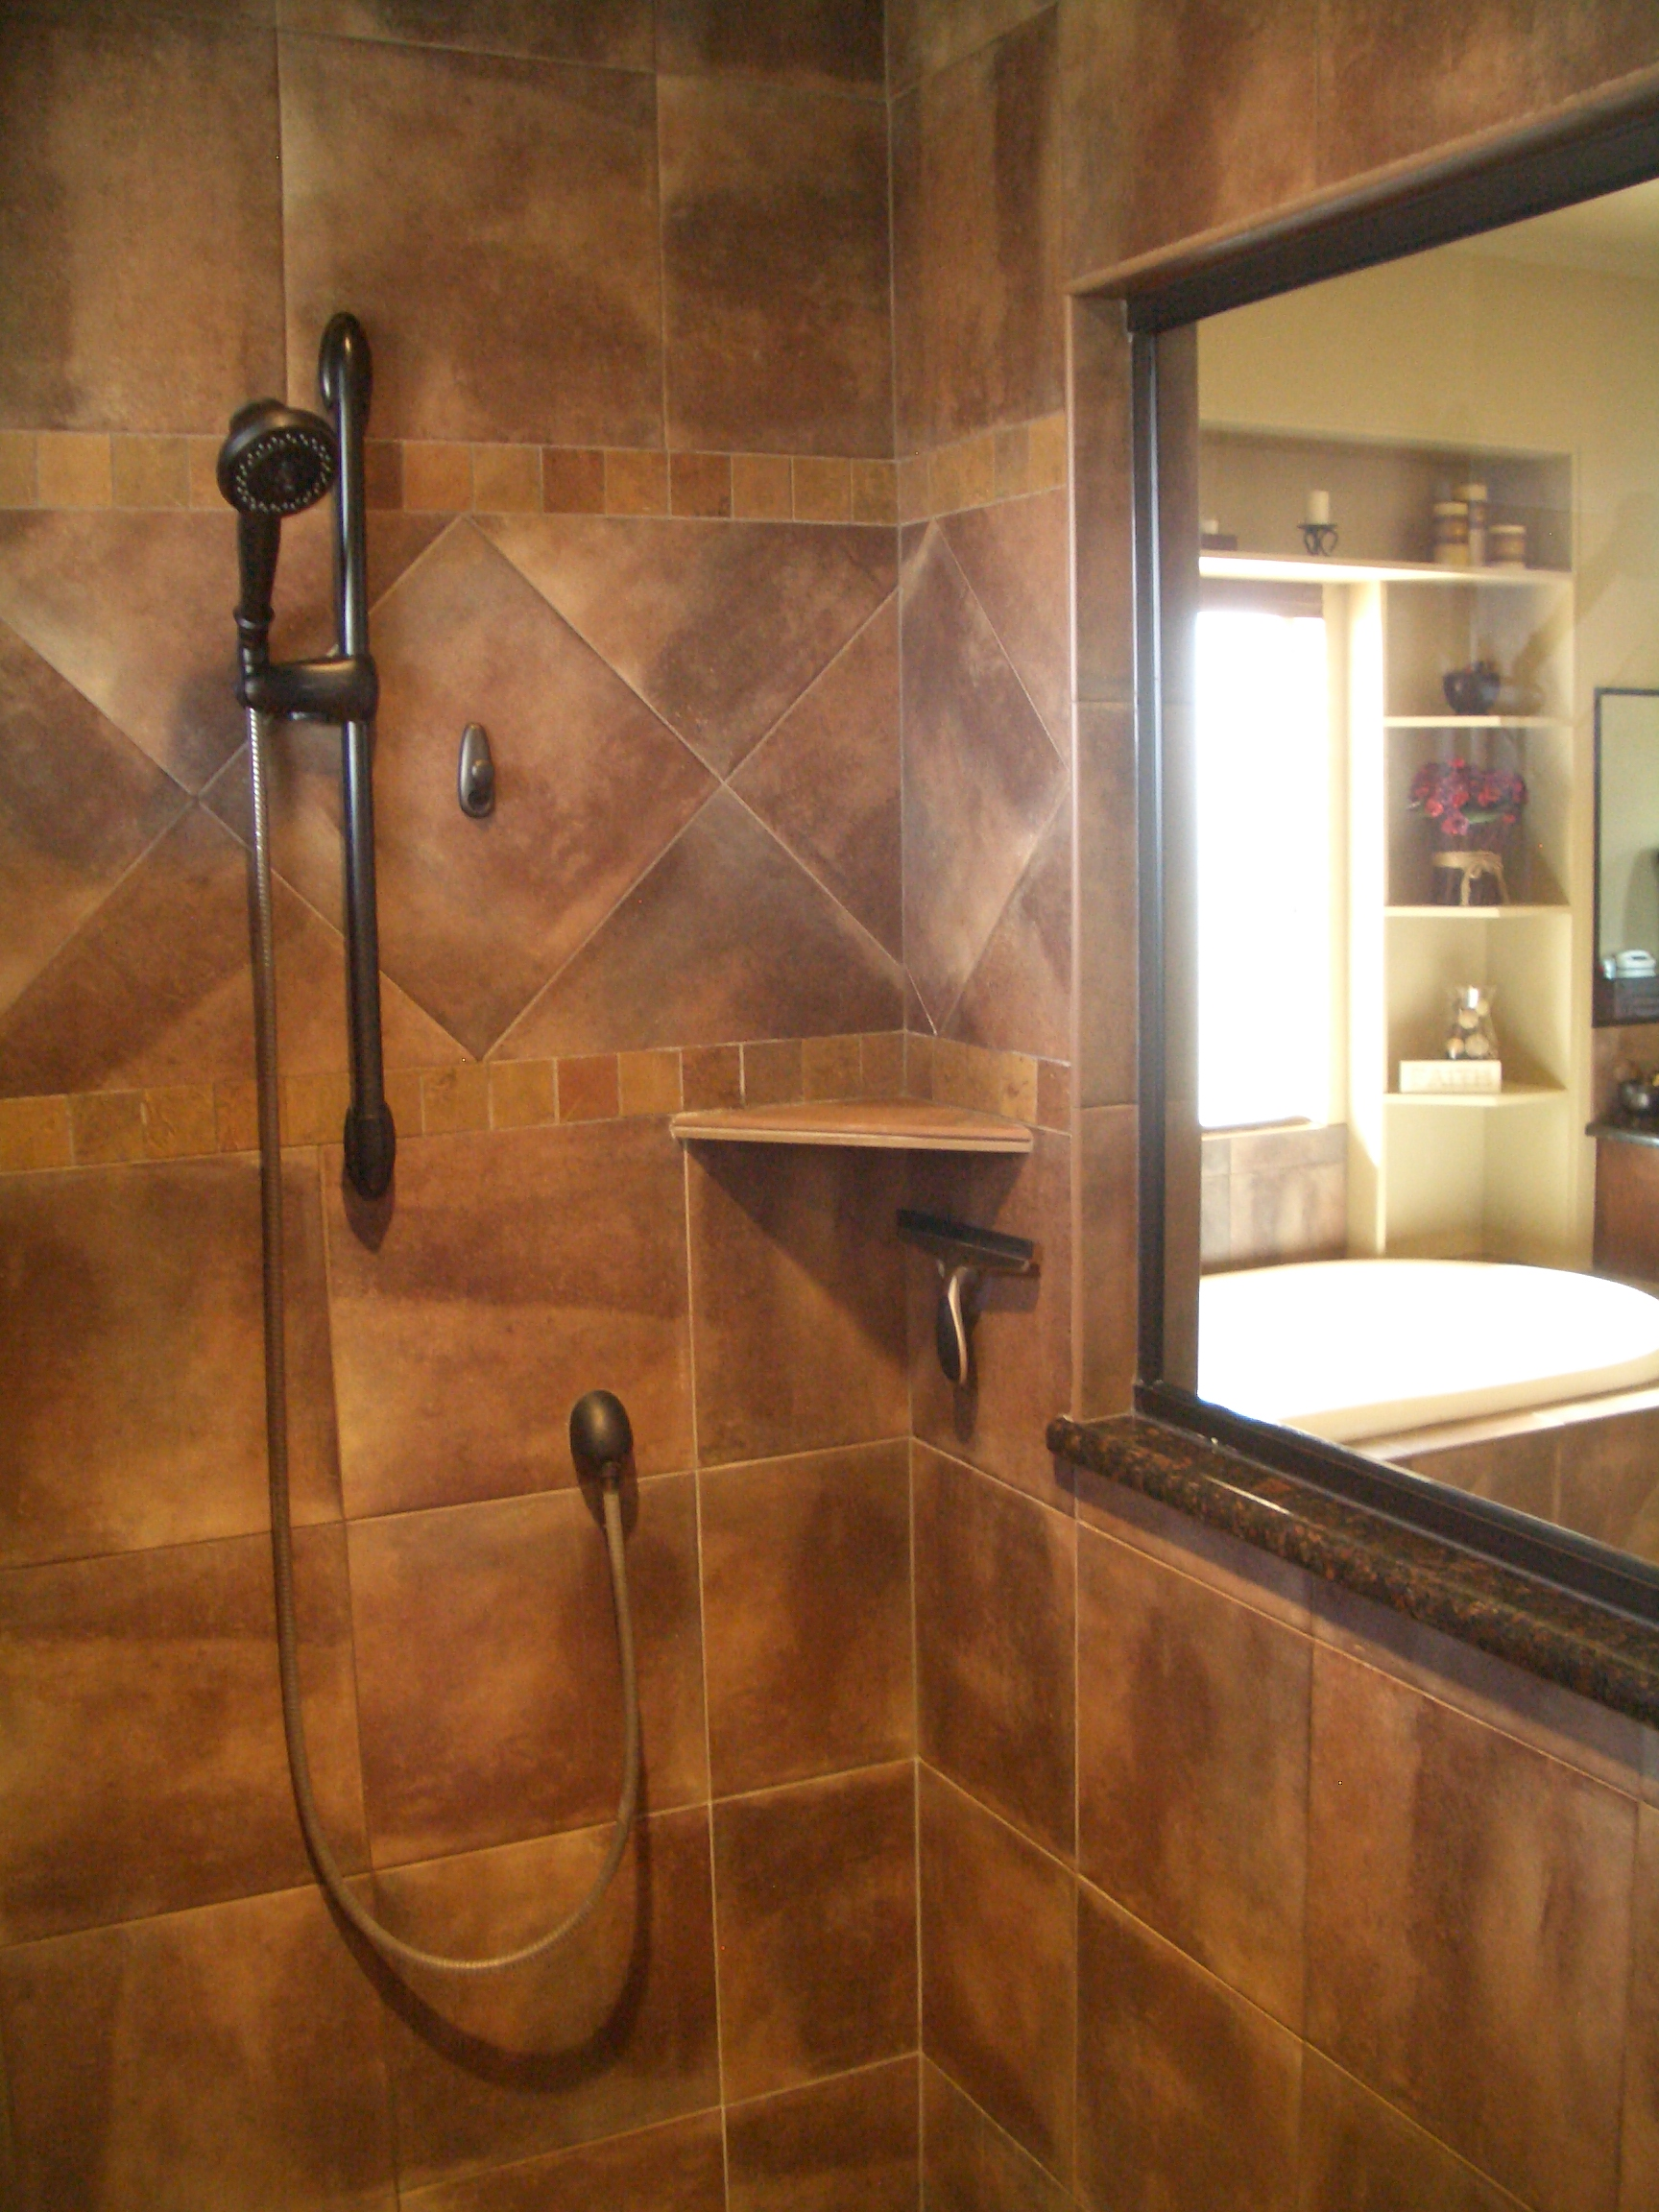 Shower upgrade options Tile a shower